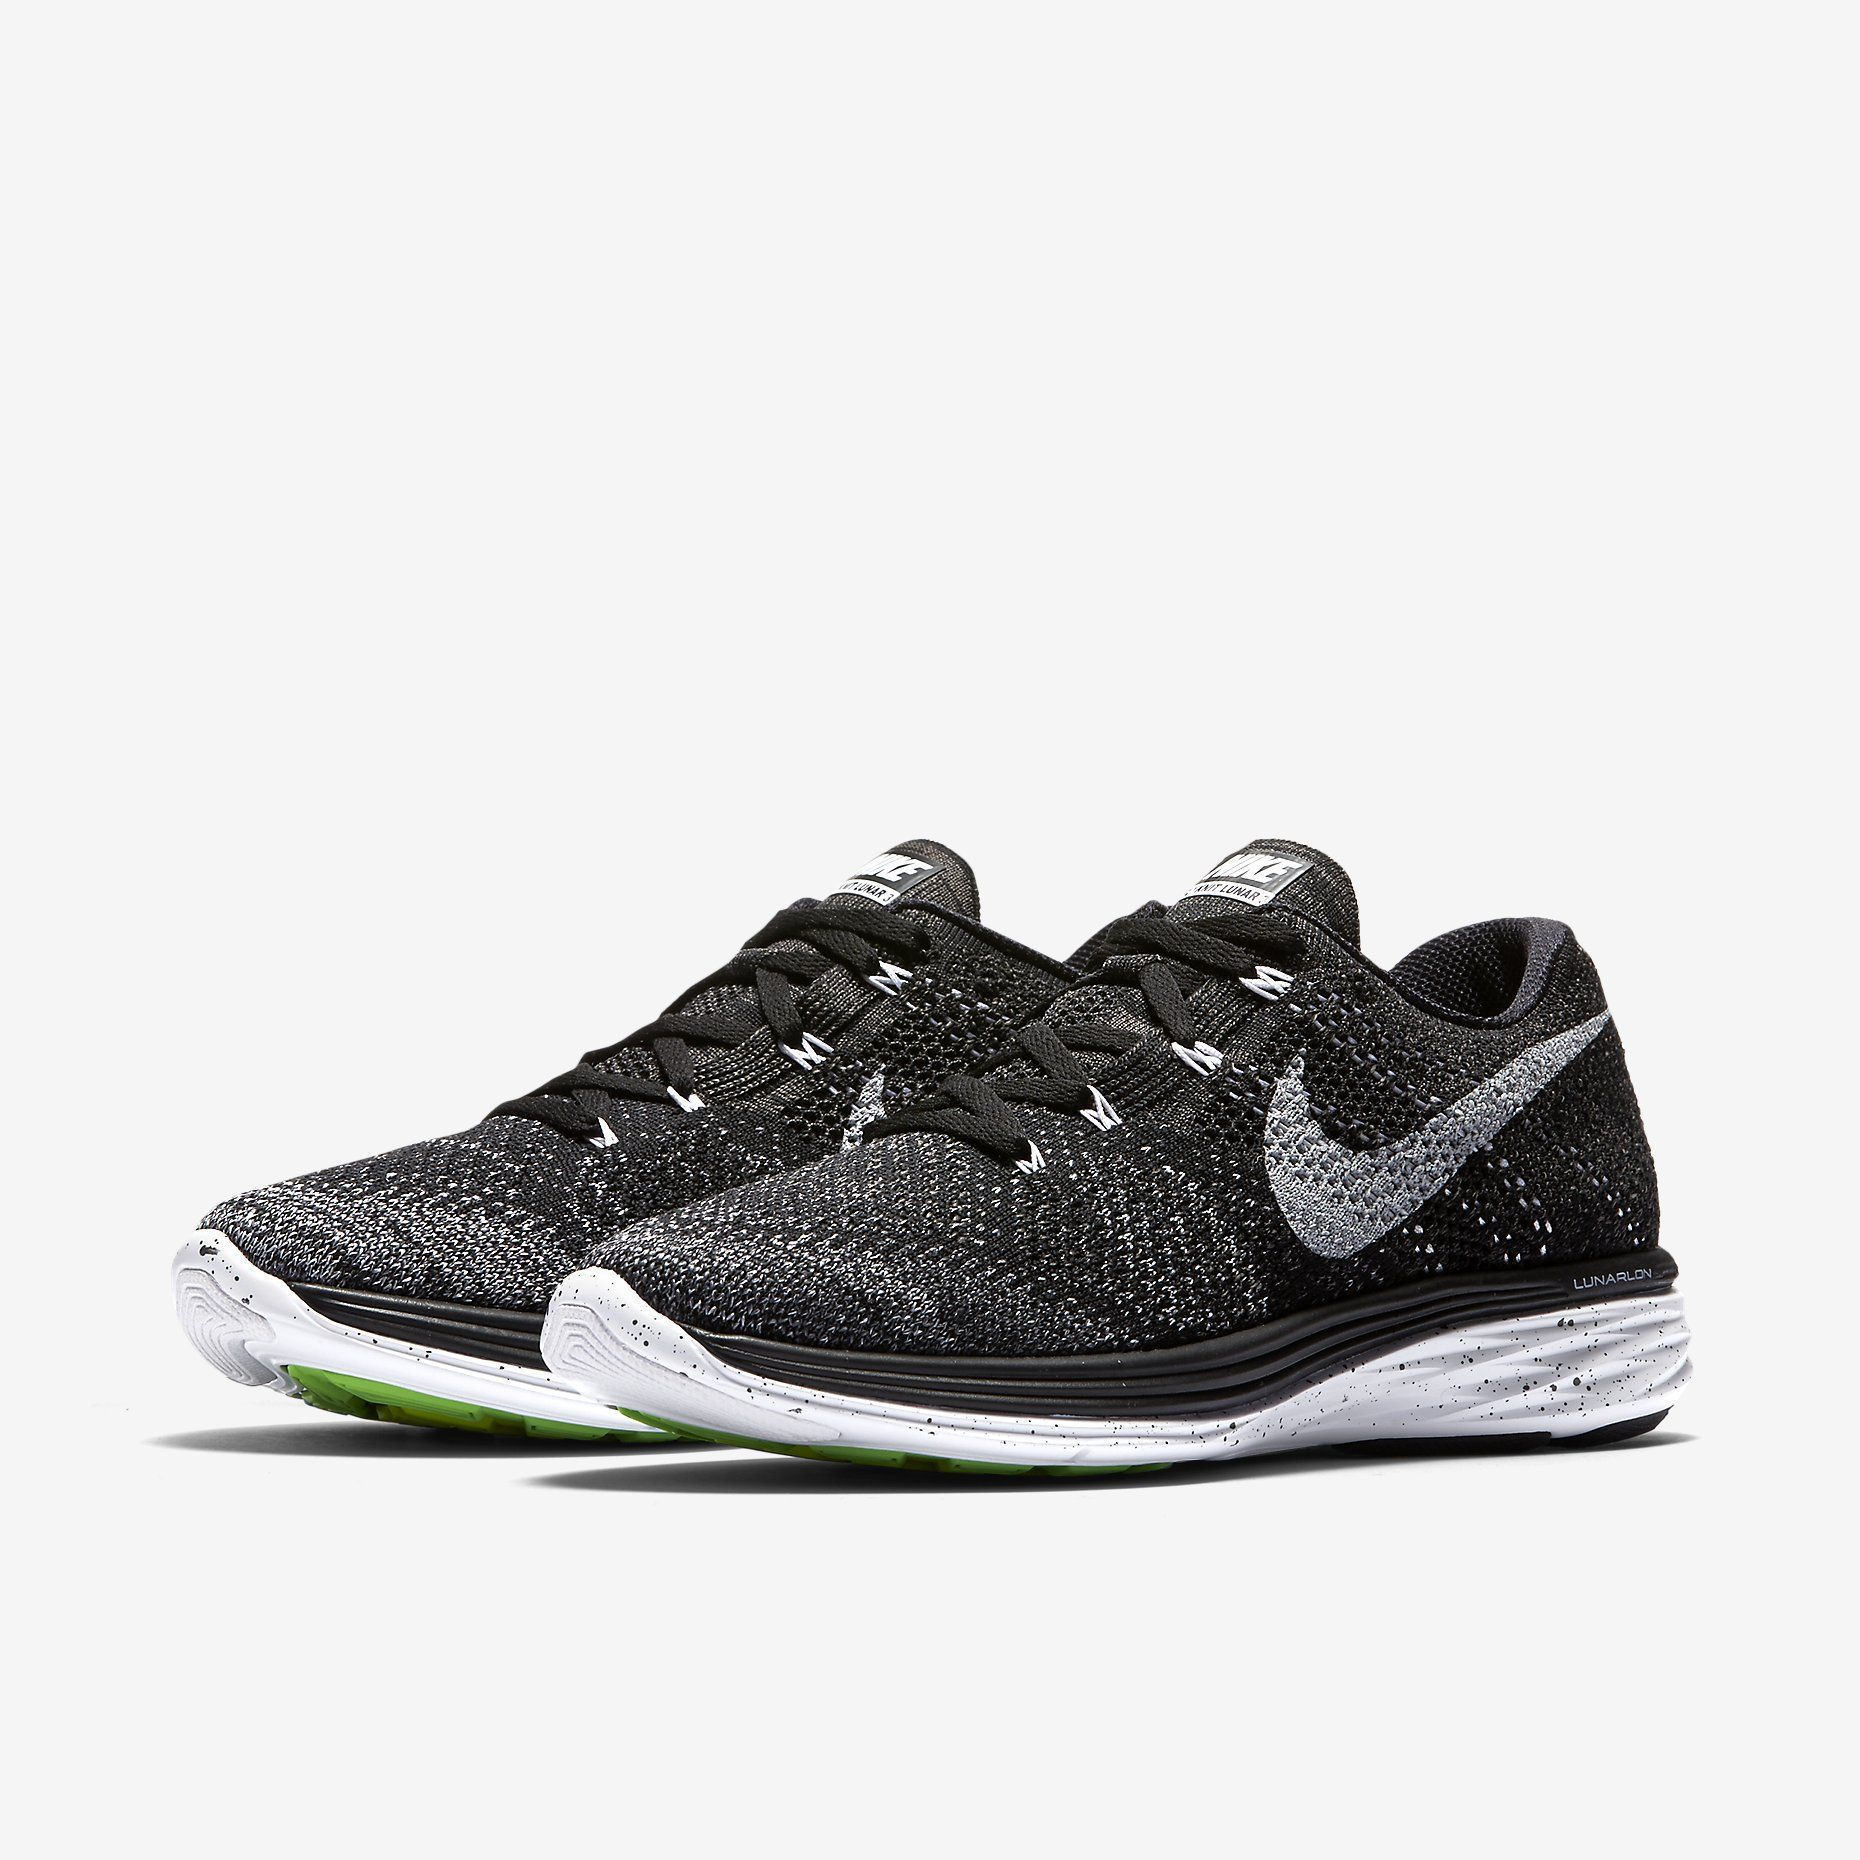 76f1682db5d8 clearance nike flyknit lunar 3 hot lava laser orange black d820c 92ac0  sale  2014 cheap nike shoes for sale info collection off big discount.new nike  roshe